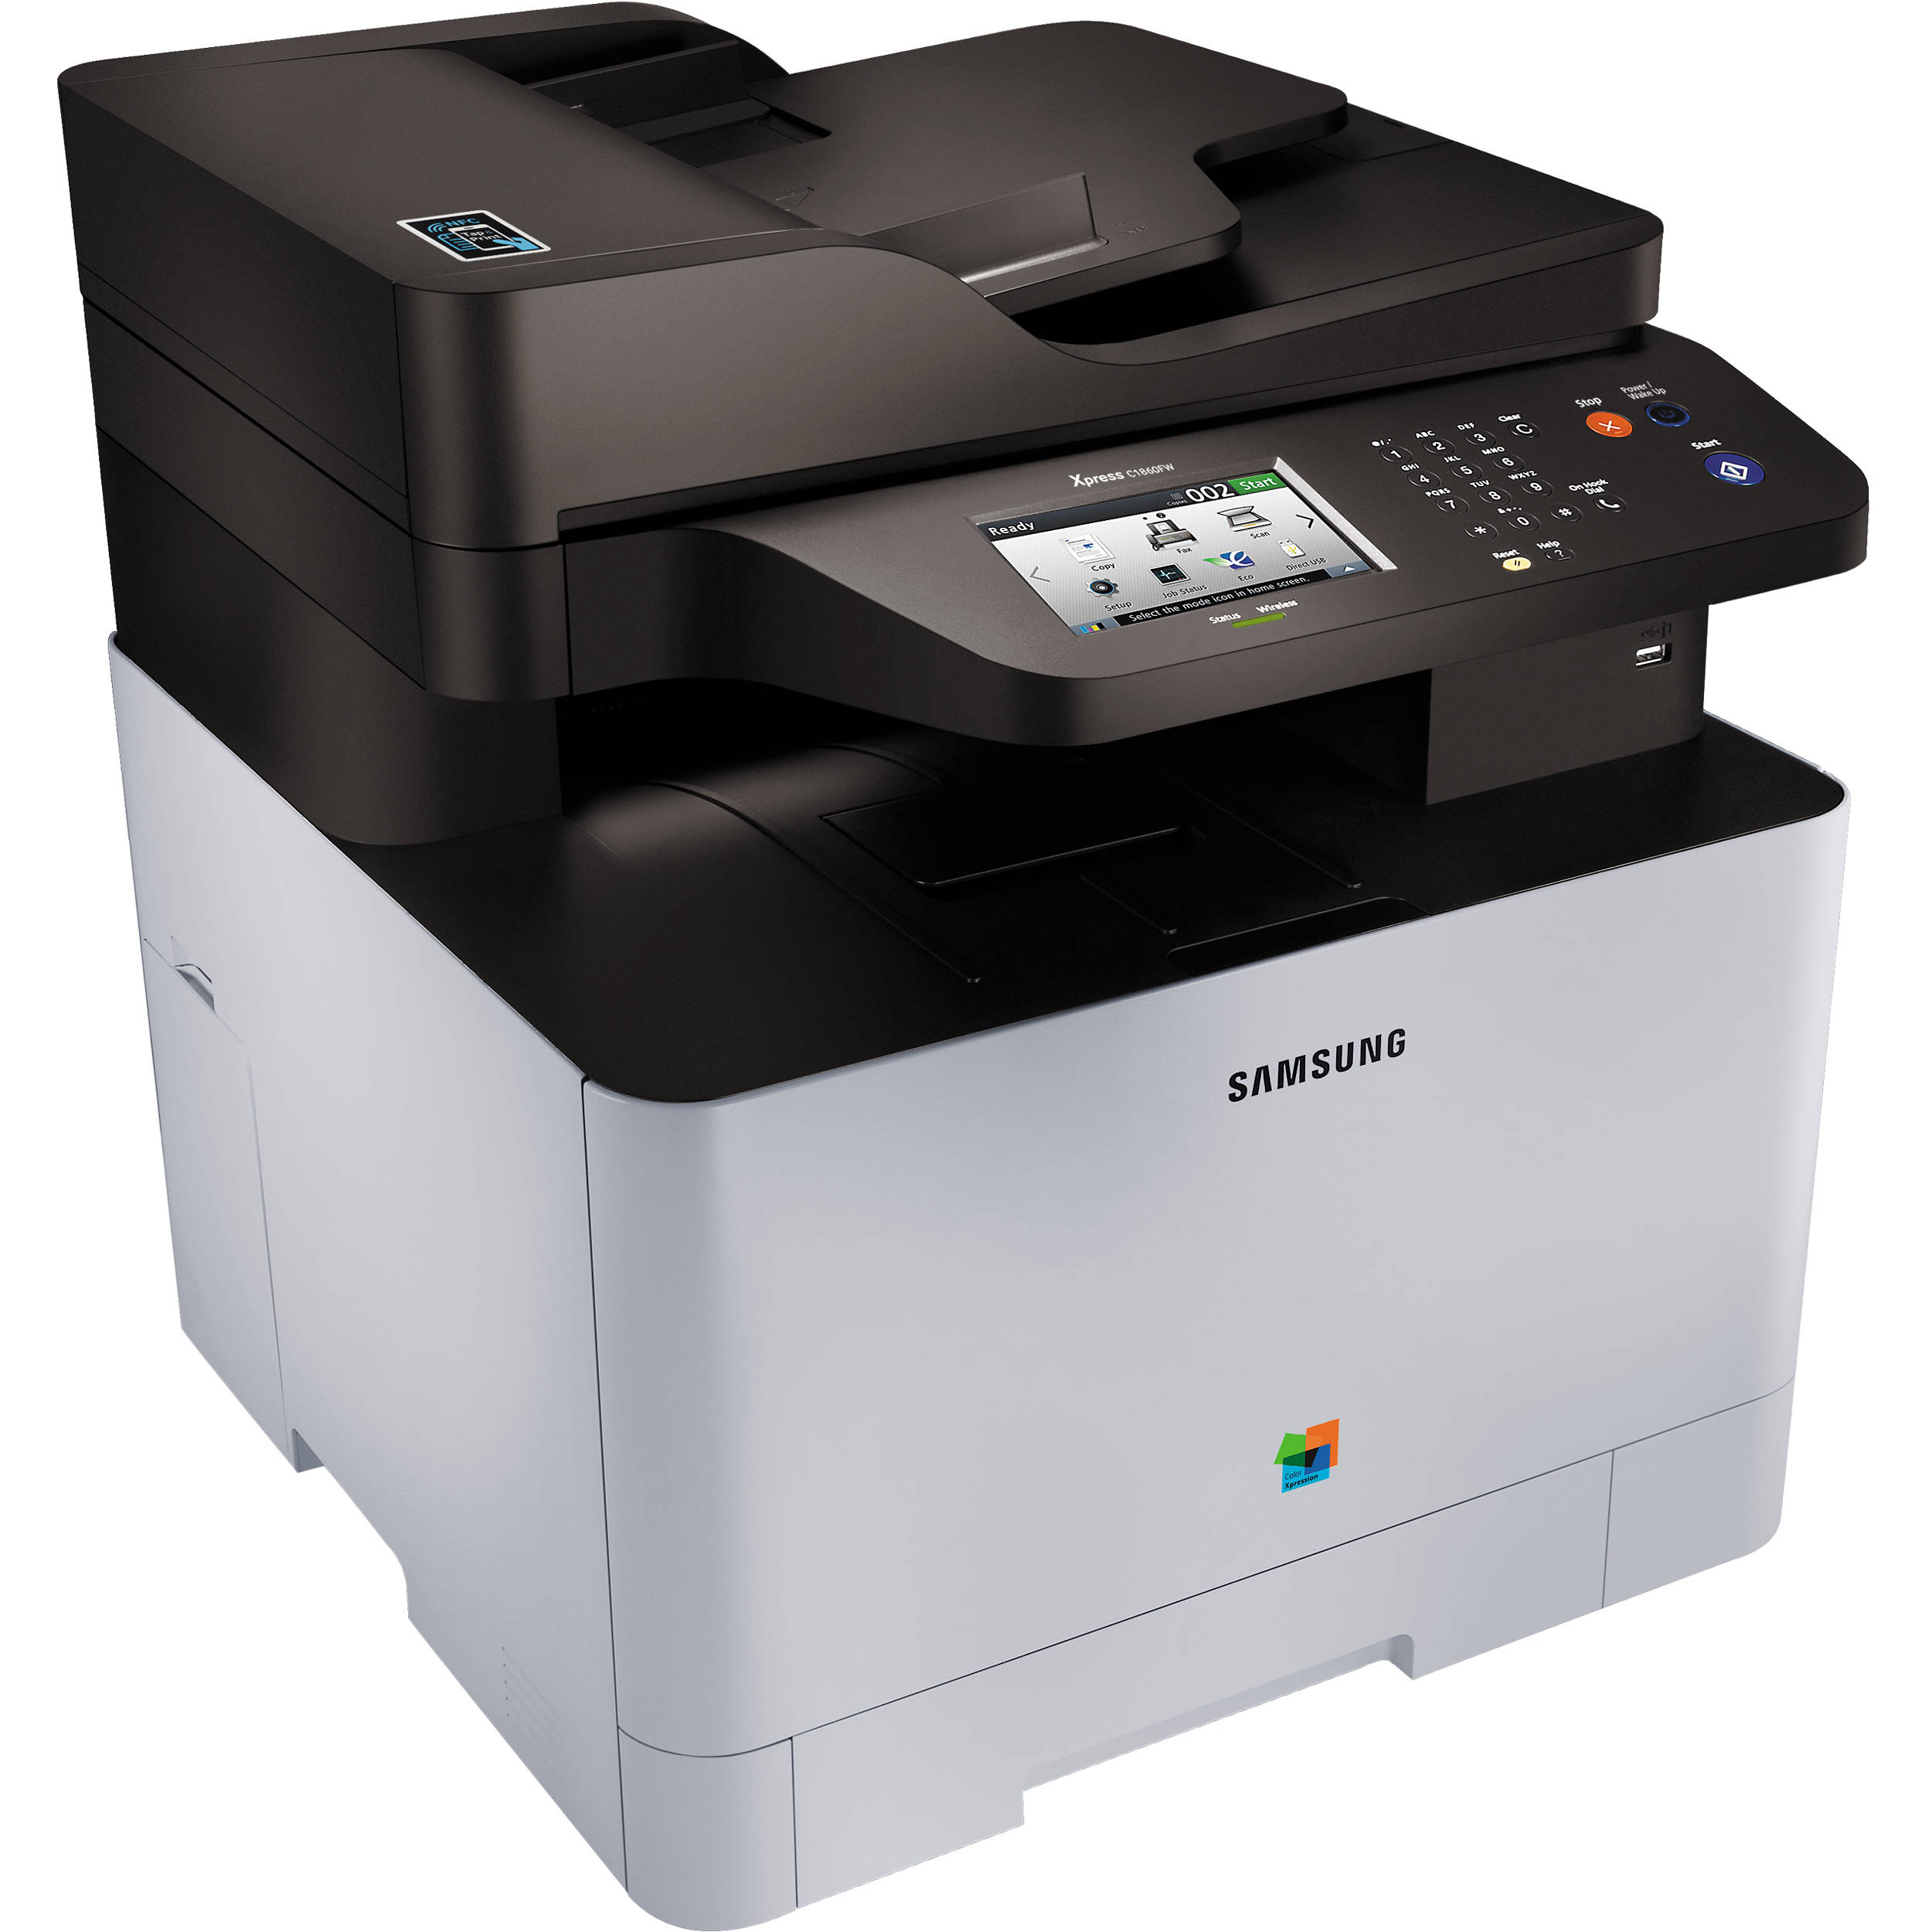 Xpress color printing - Samsung Xpress C1860fw Color All In One Laser Printer